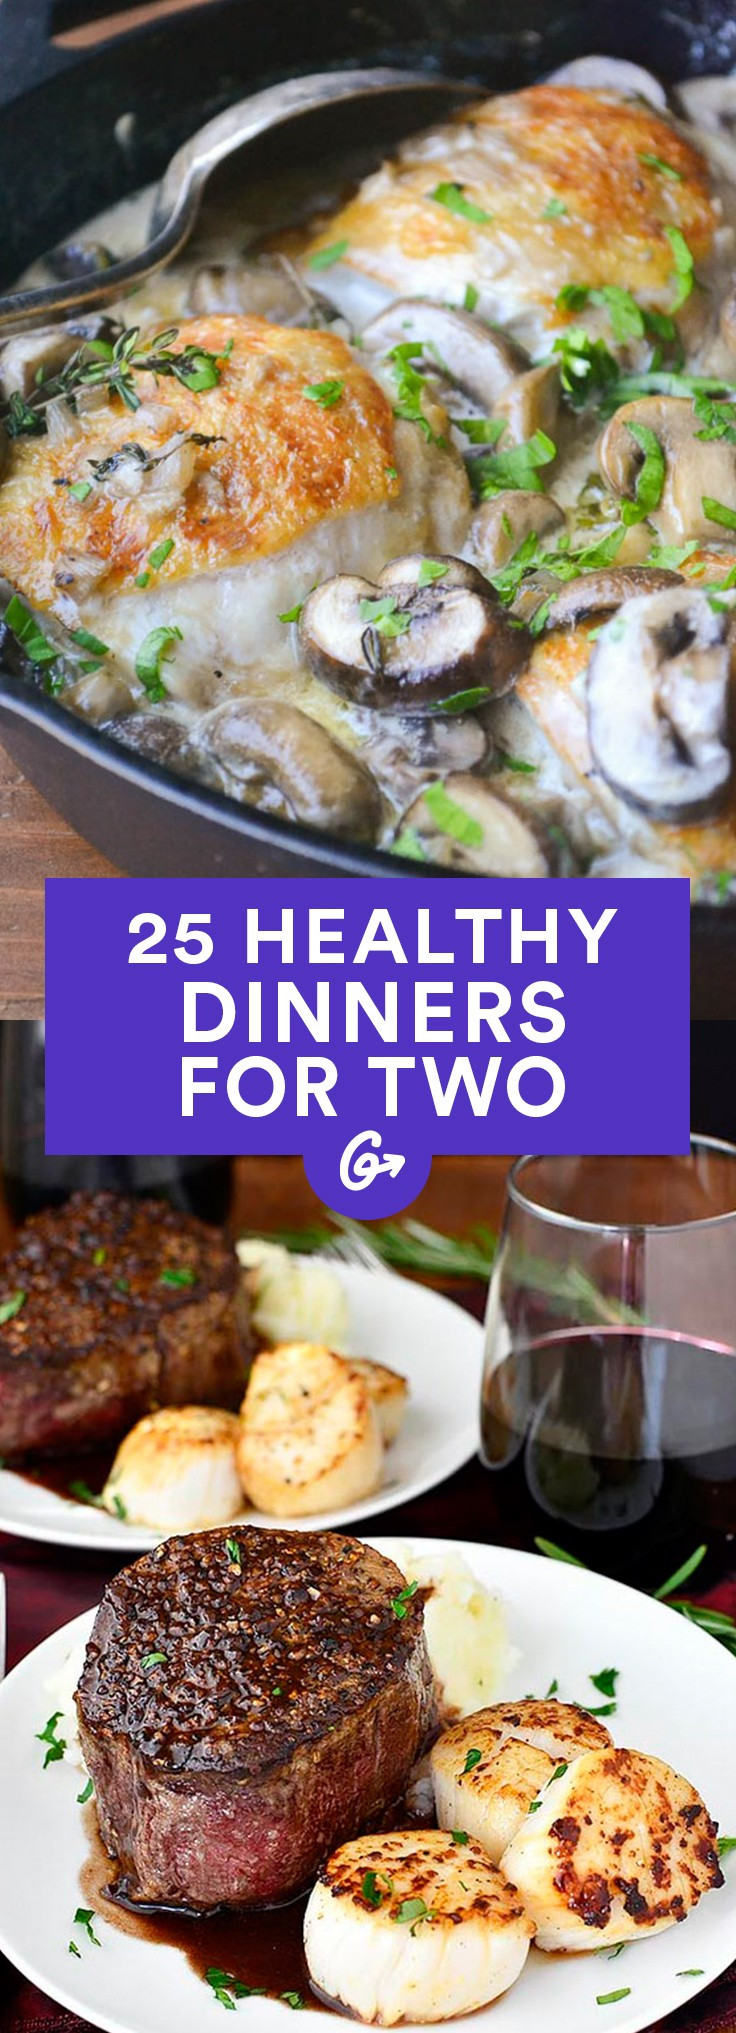 Healthy Dinner Recipes for Two 20 Ideas for Healthy Dinner Recipes for Two